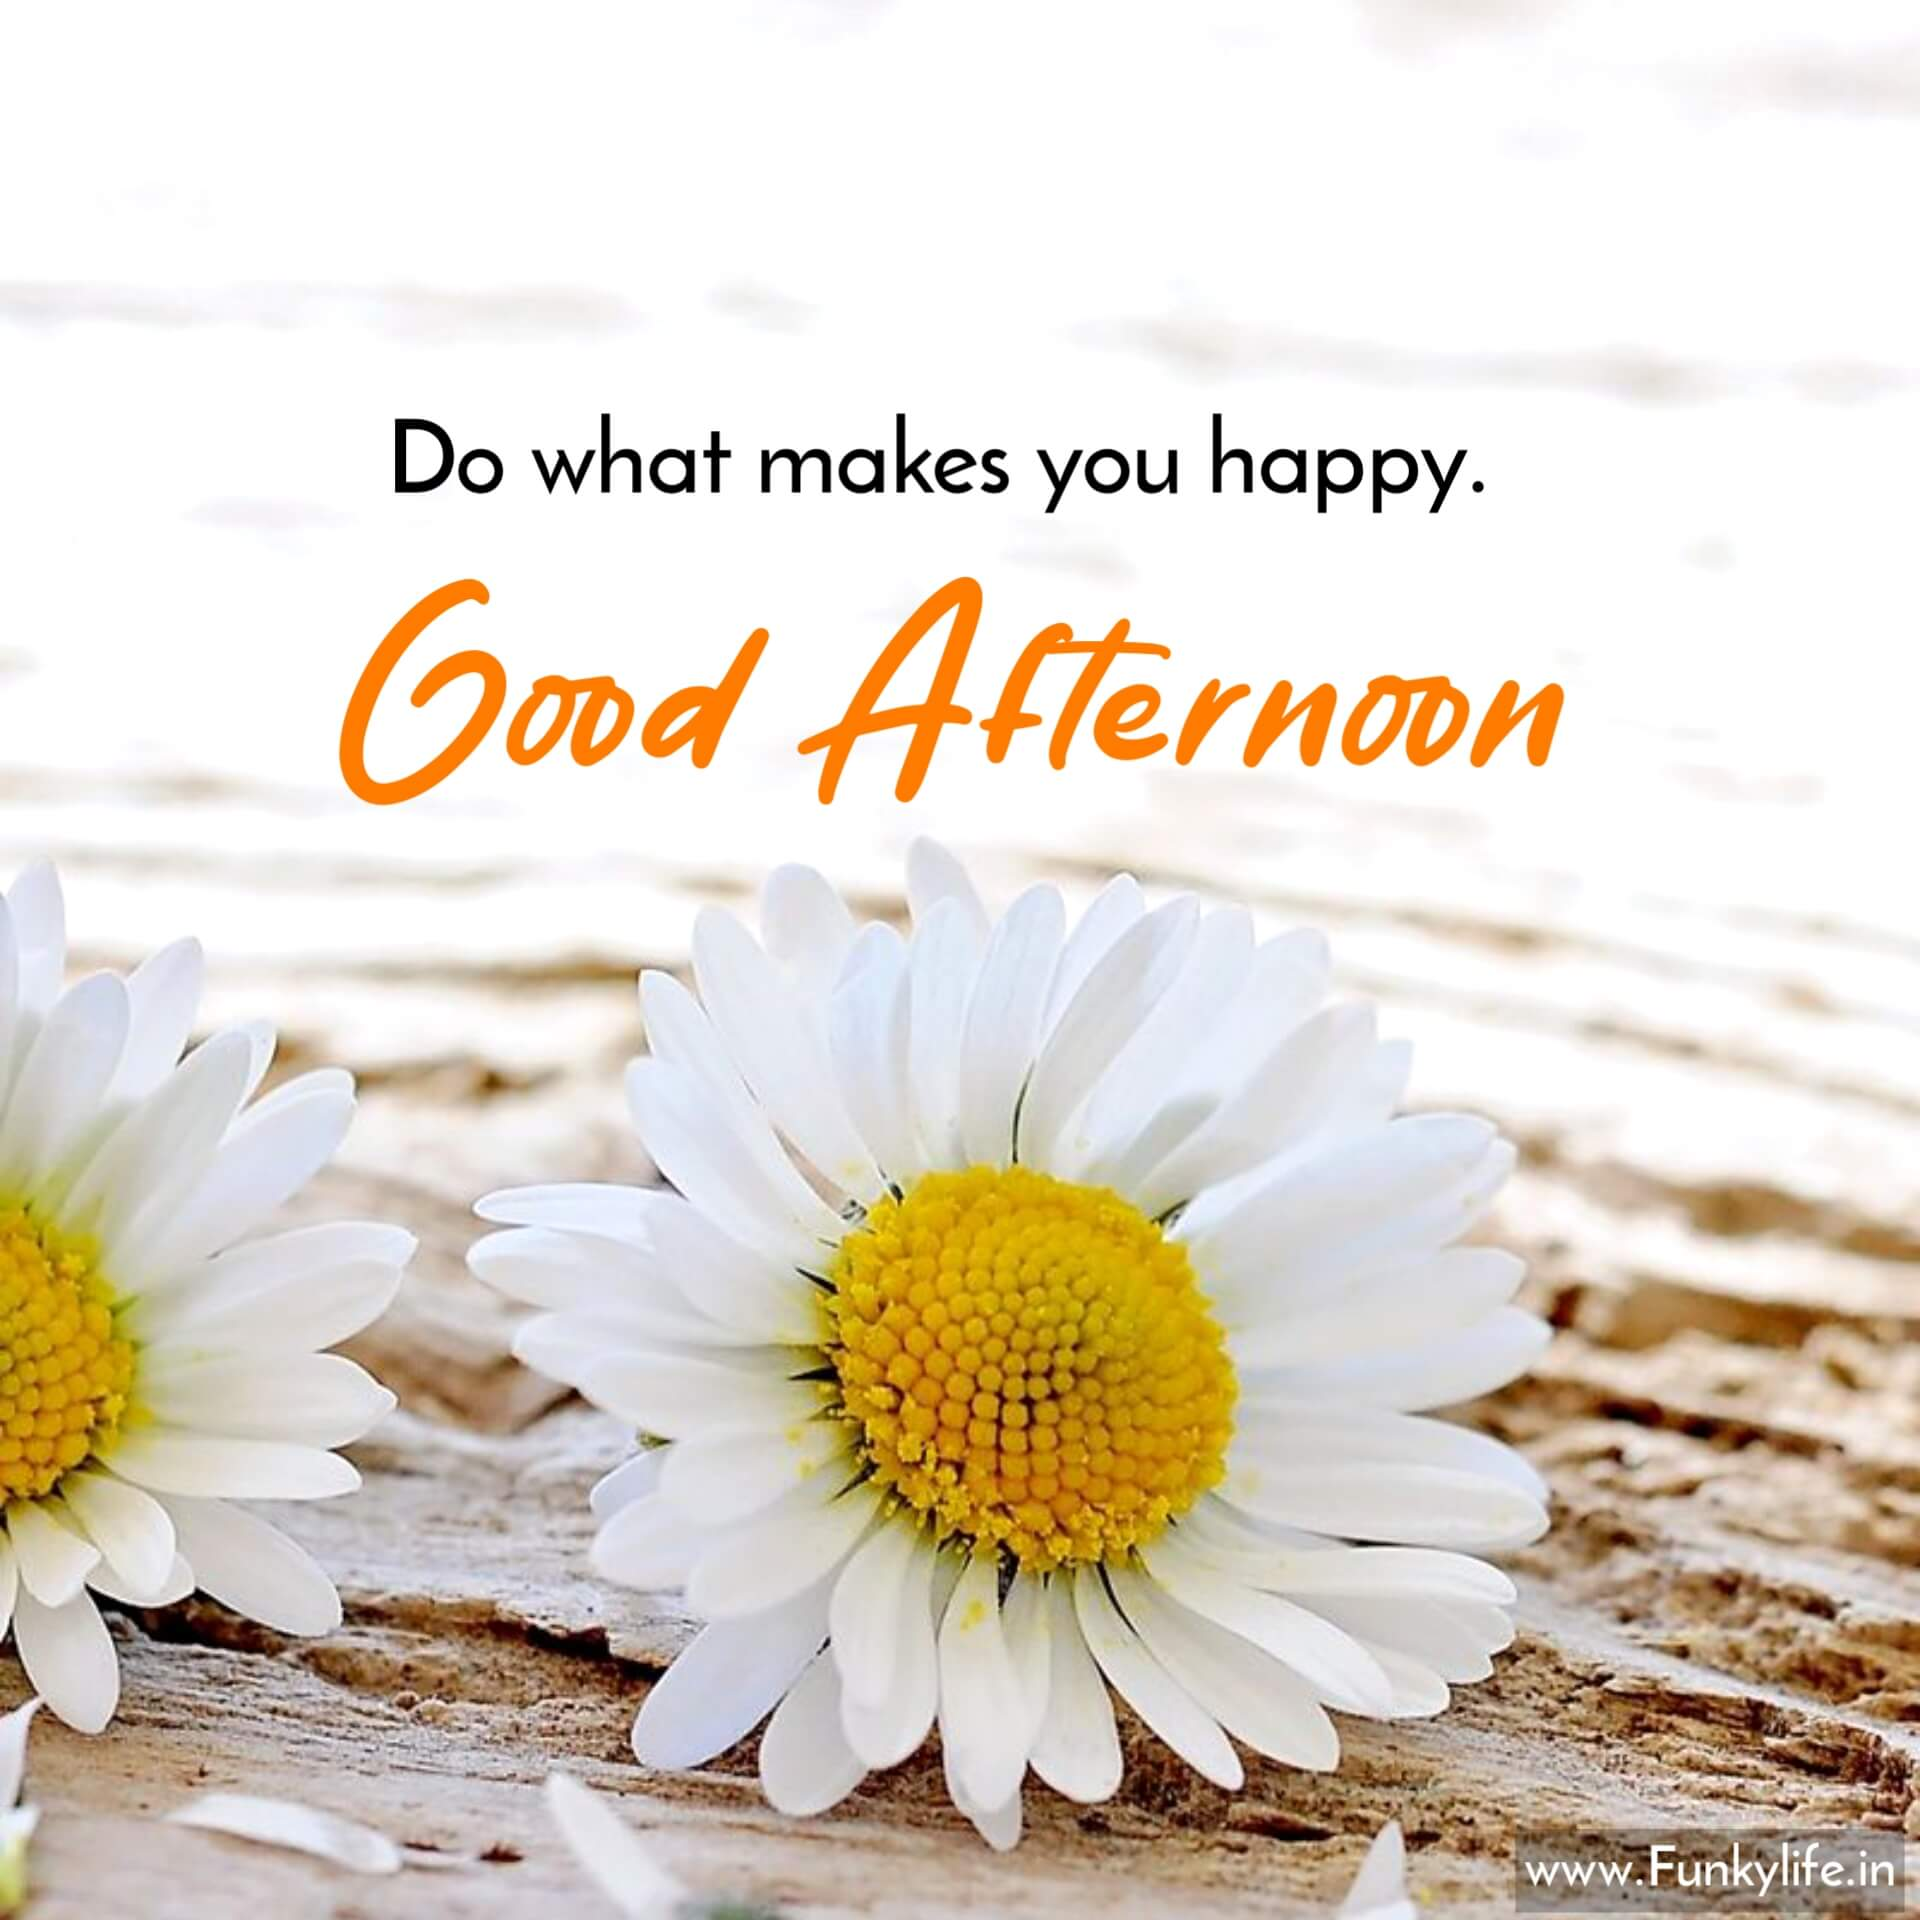 Best Afternoon Wishes